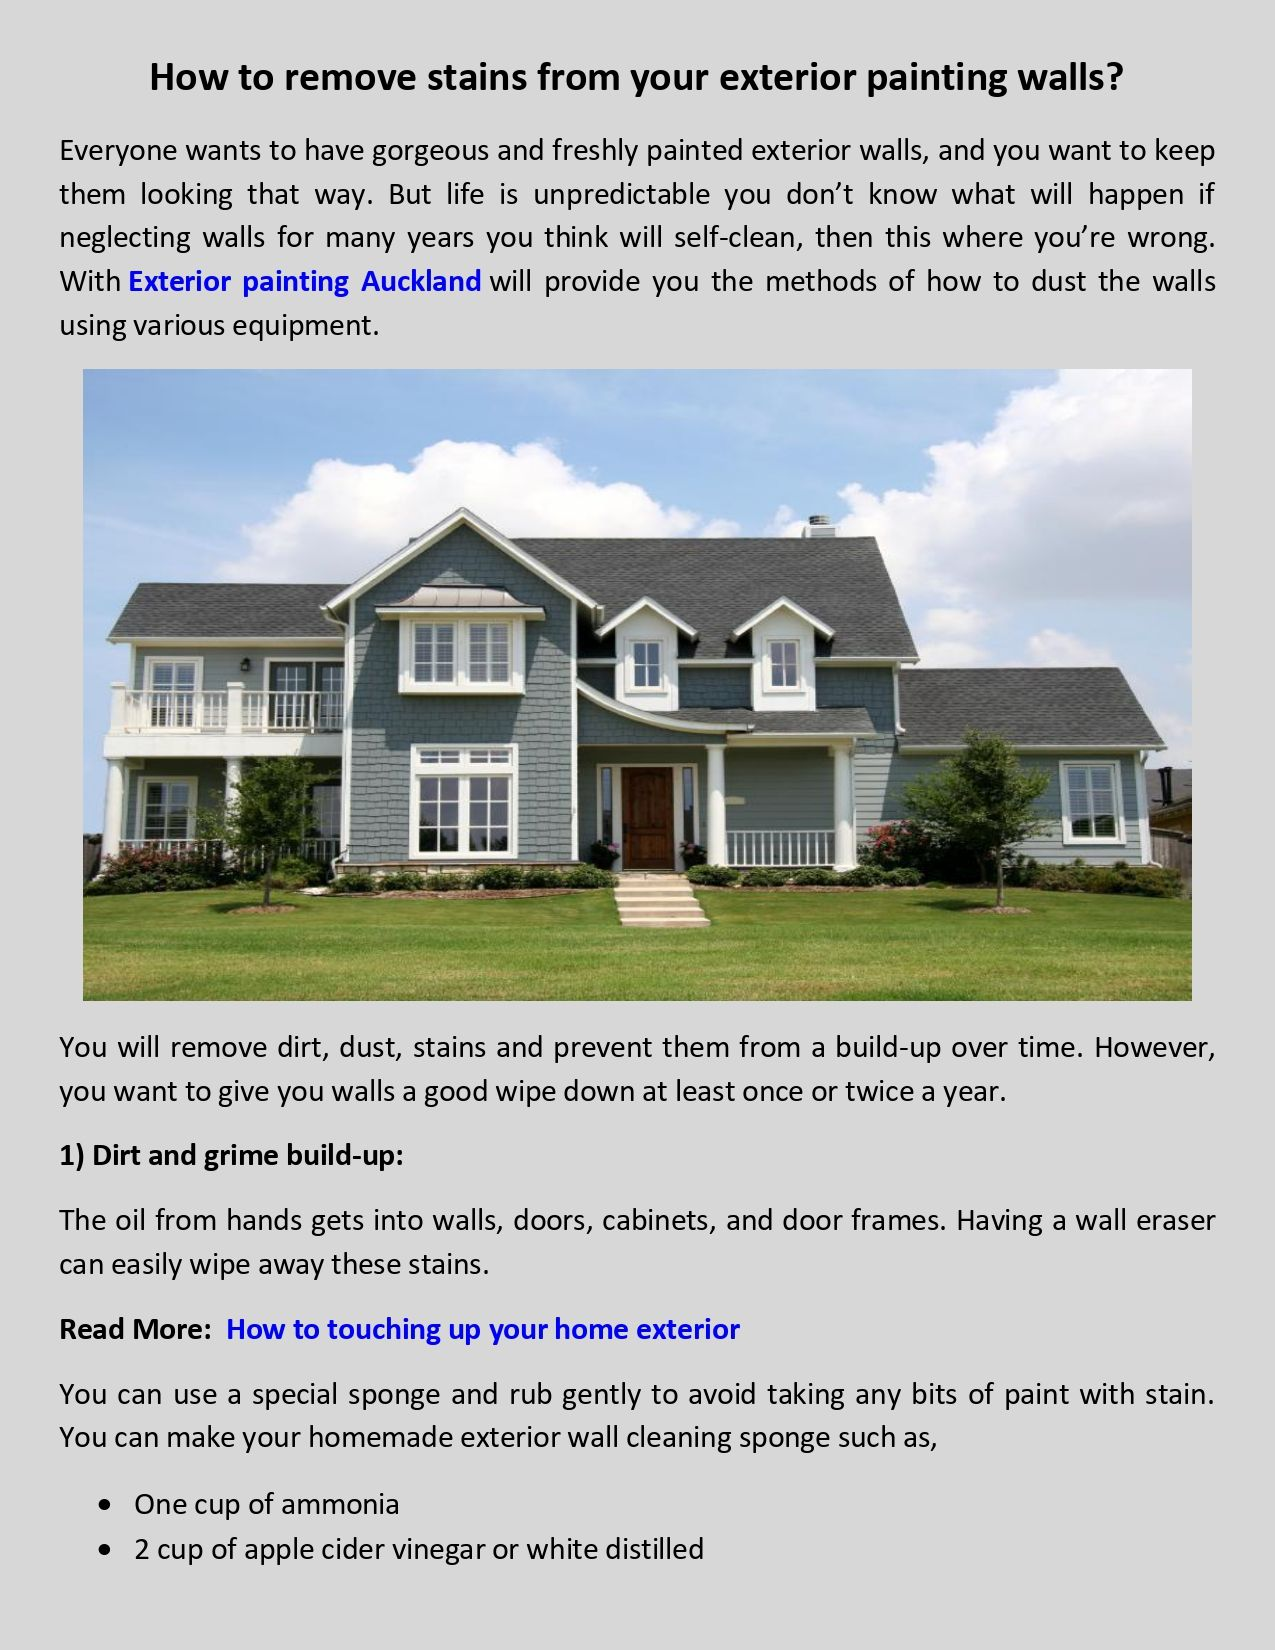 Remove Stain From Your Exterior Wall Exterior Paint Stain Remover Exterior